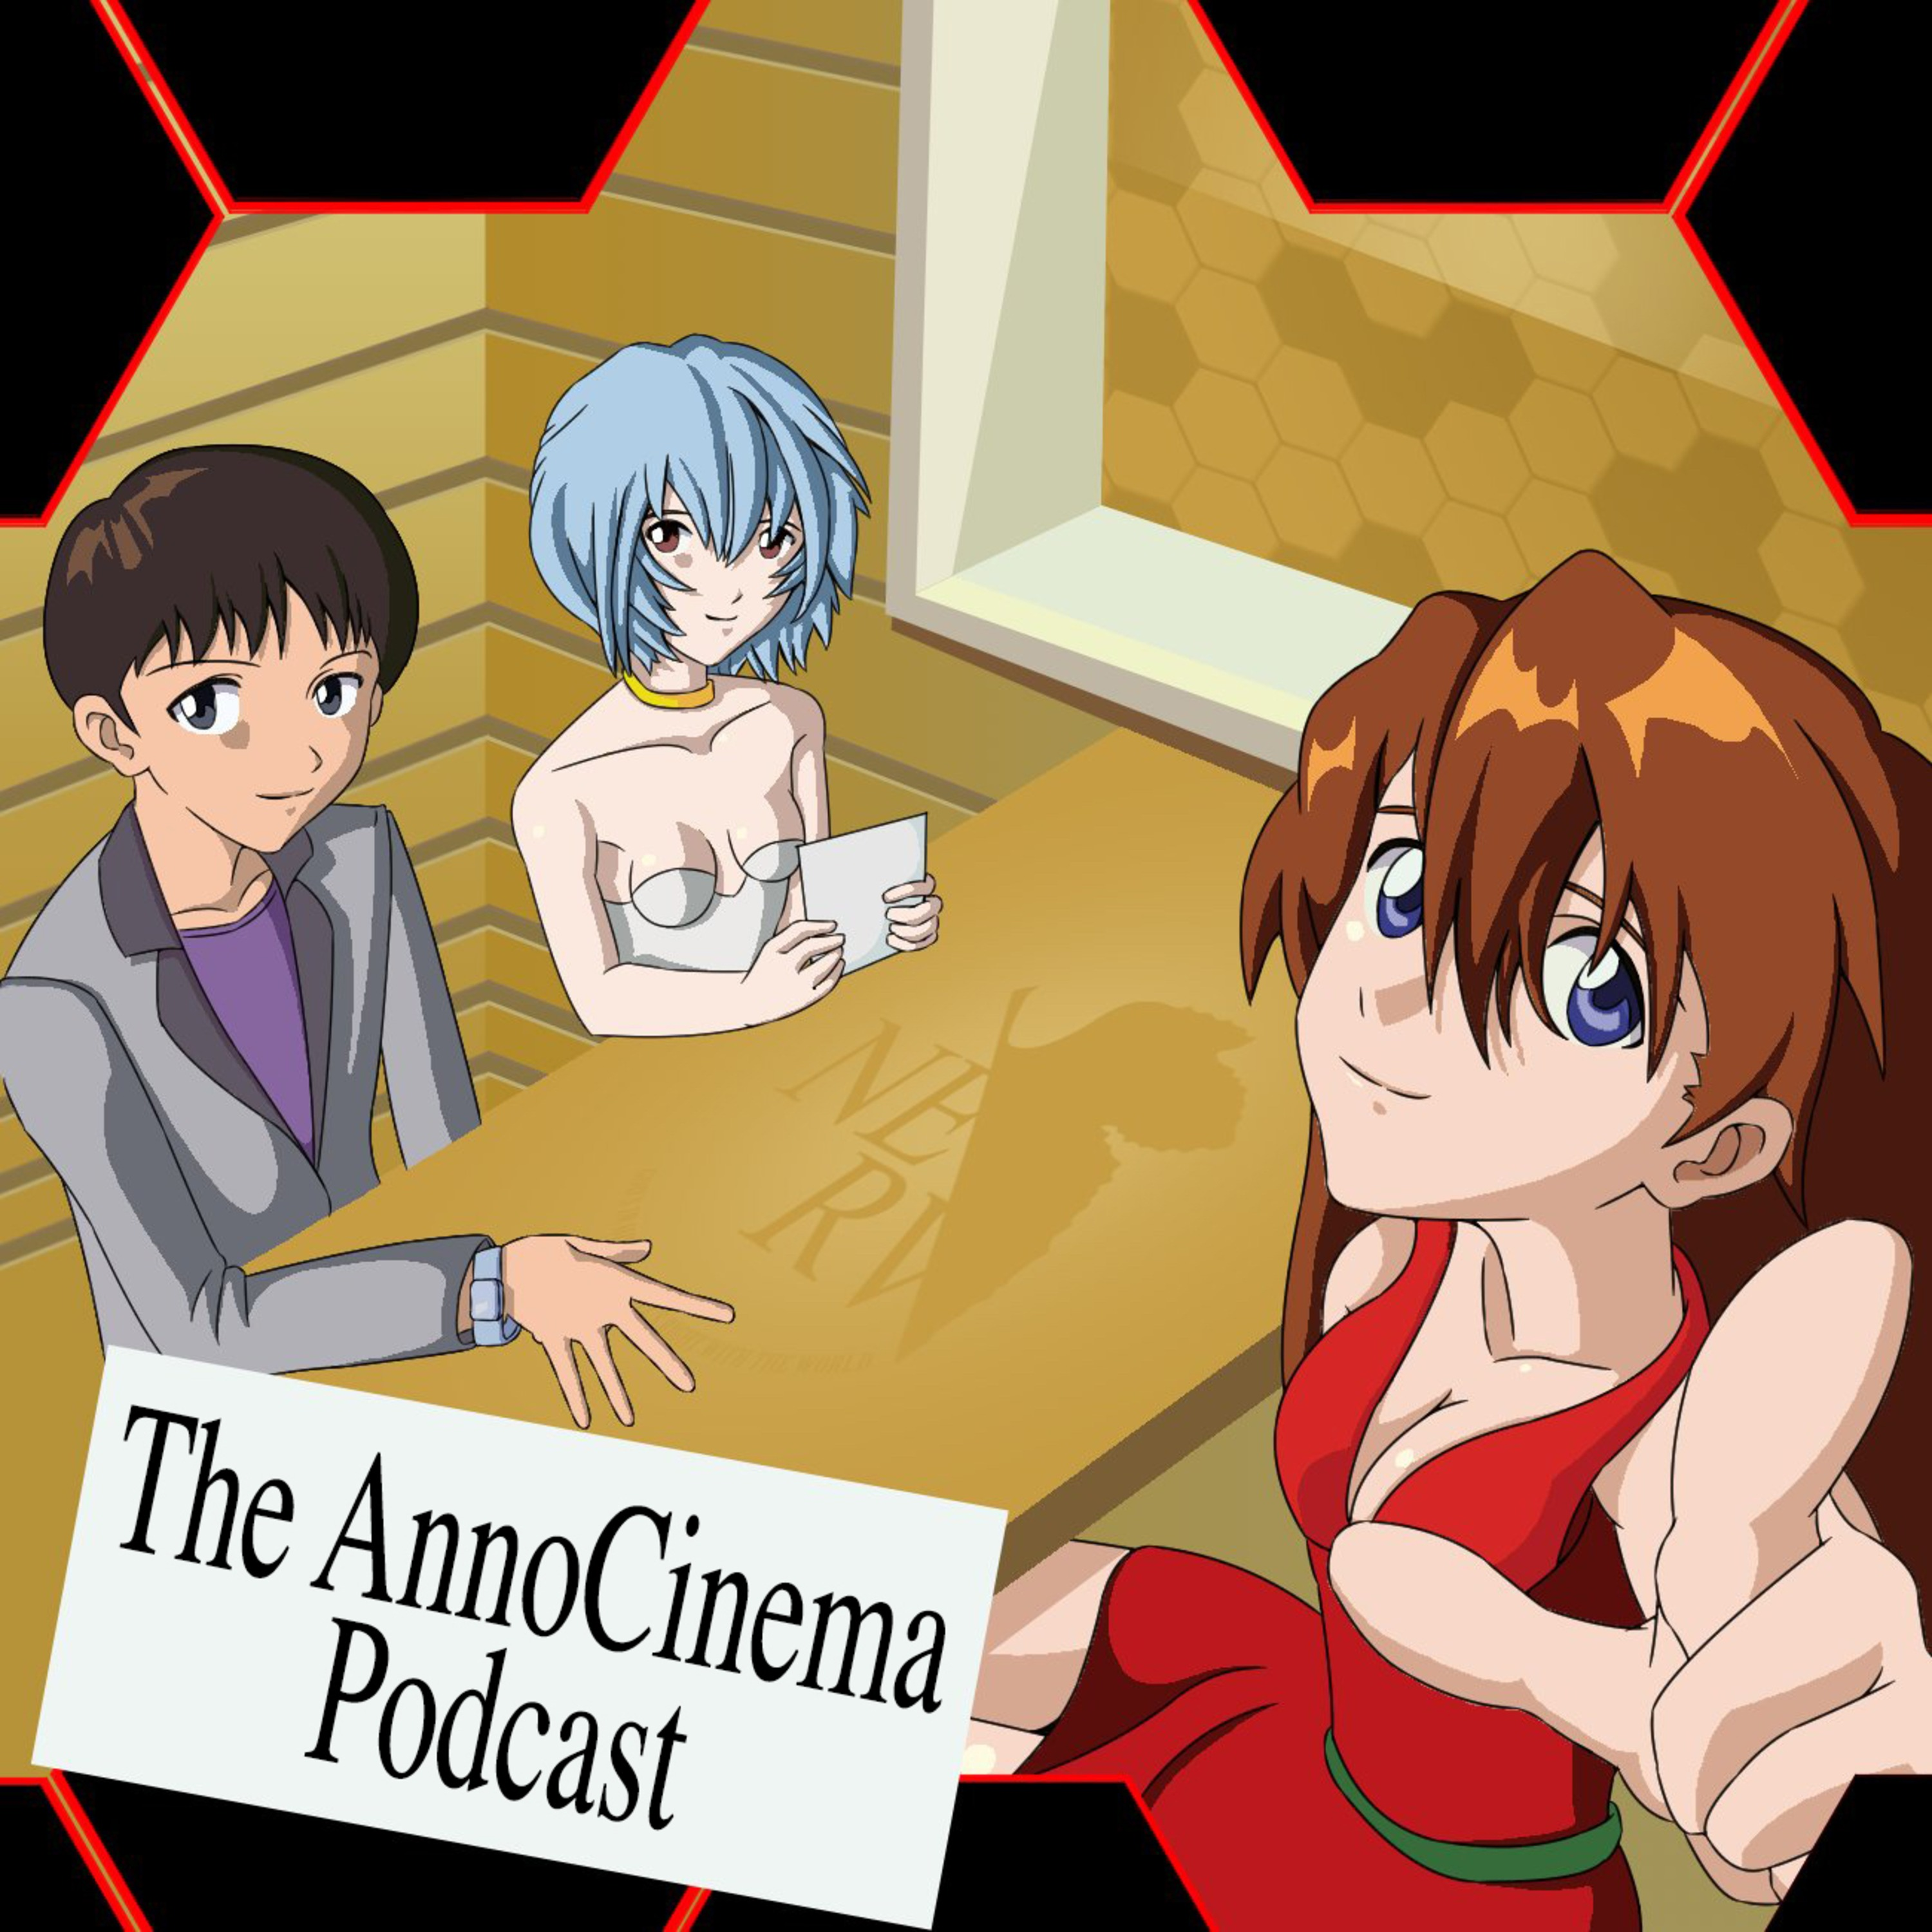 AnnoCinema Podcast #10